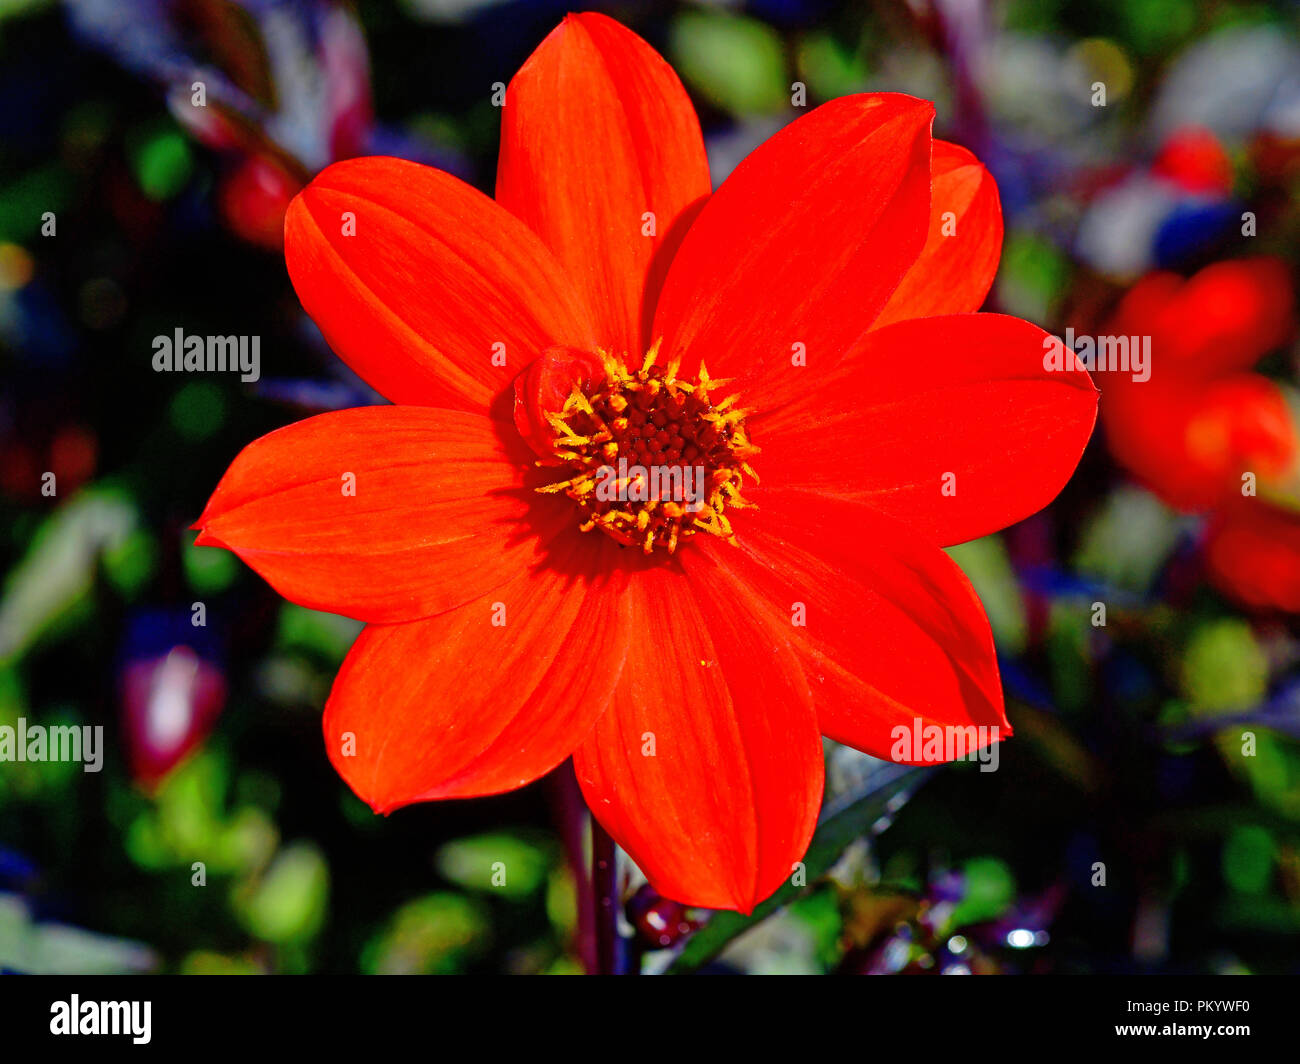 Red Flower With Yellow Stamens And Magenta Centre Colourful Blurred